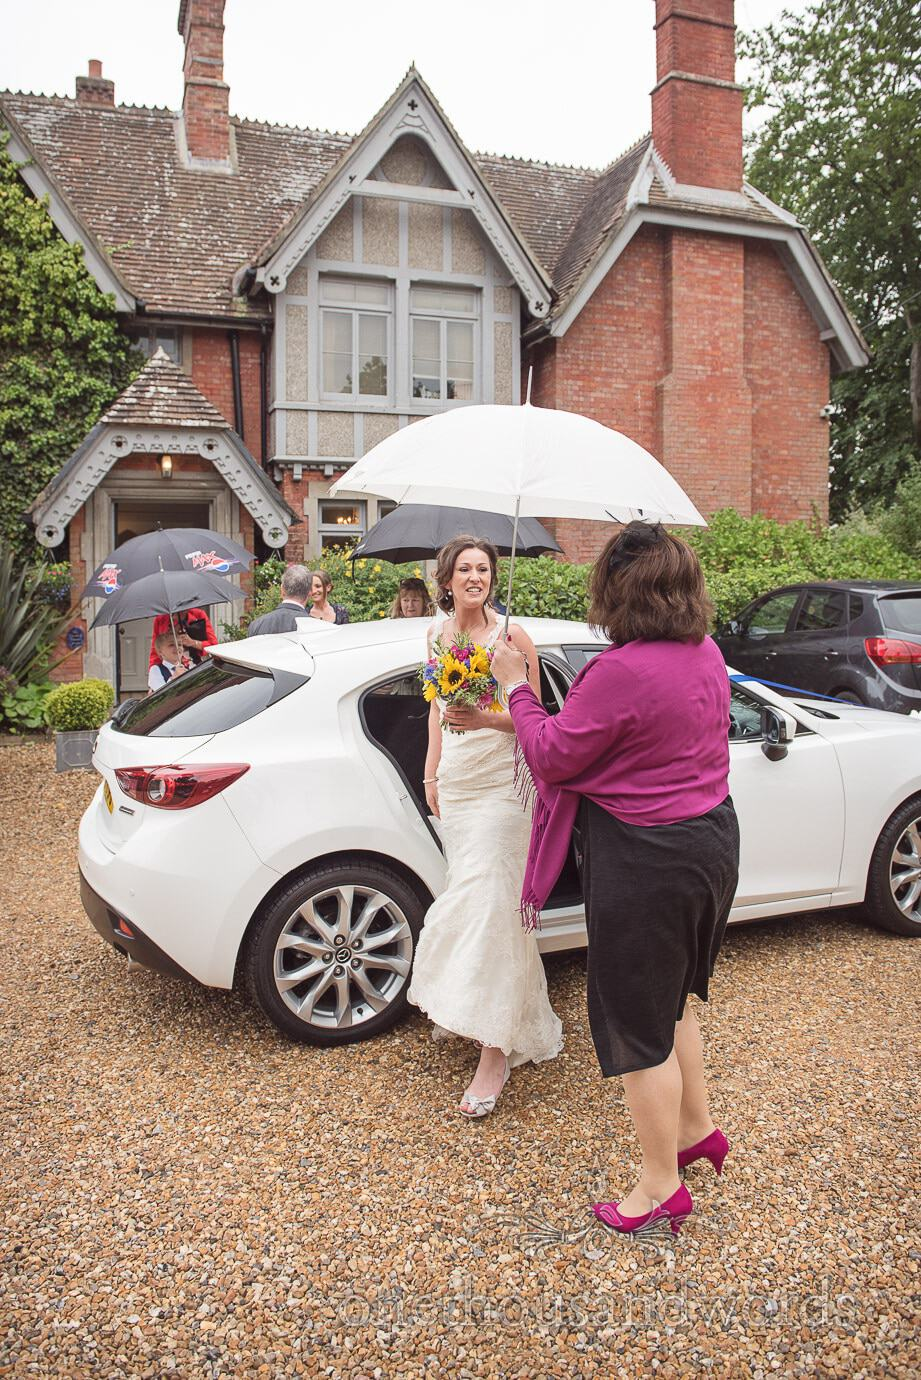 Bride arrived under umbrella at The Old Vicarage Wedding venue in New Forest